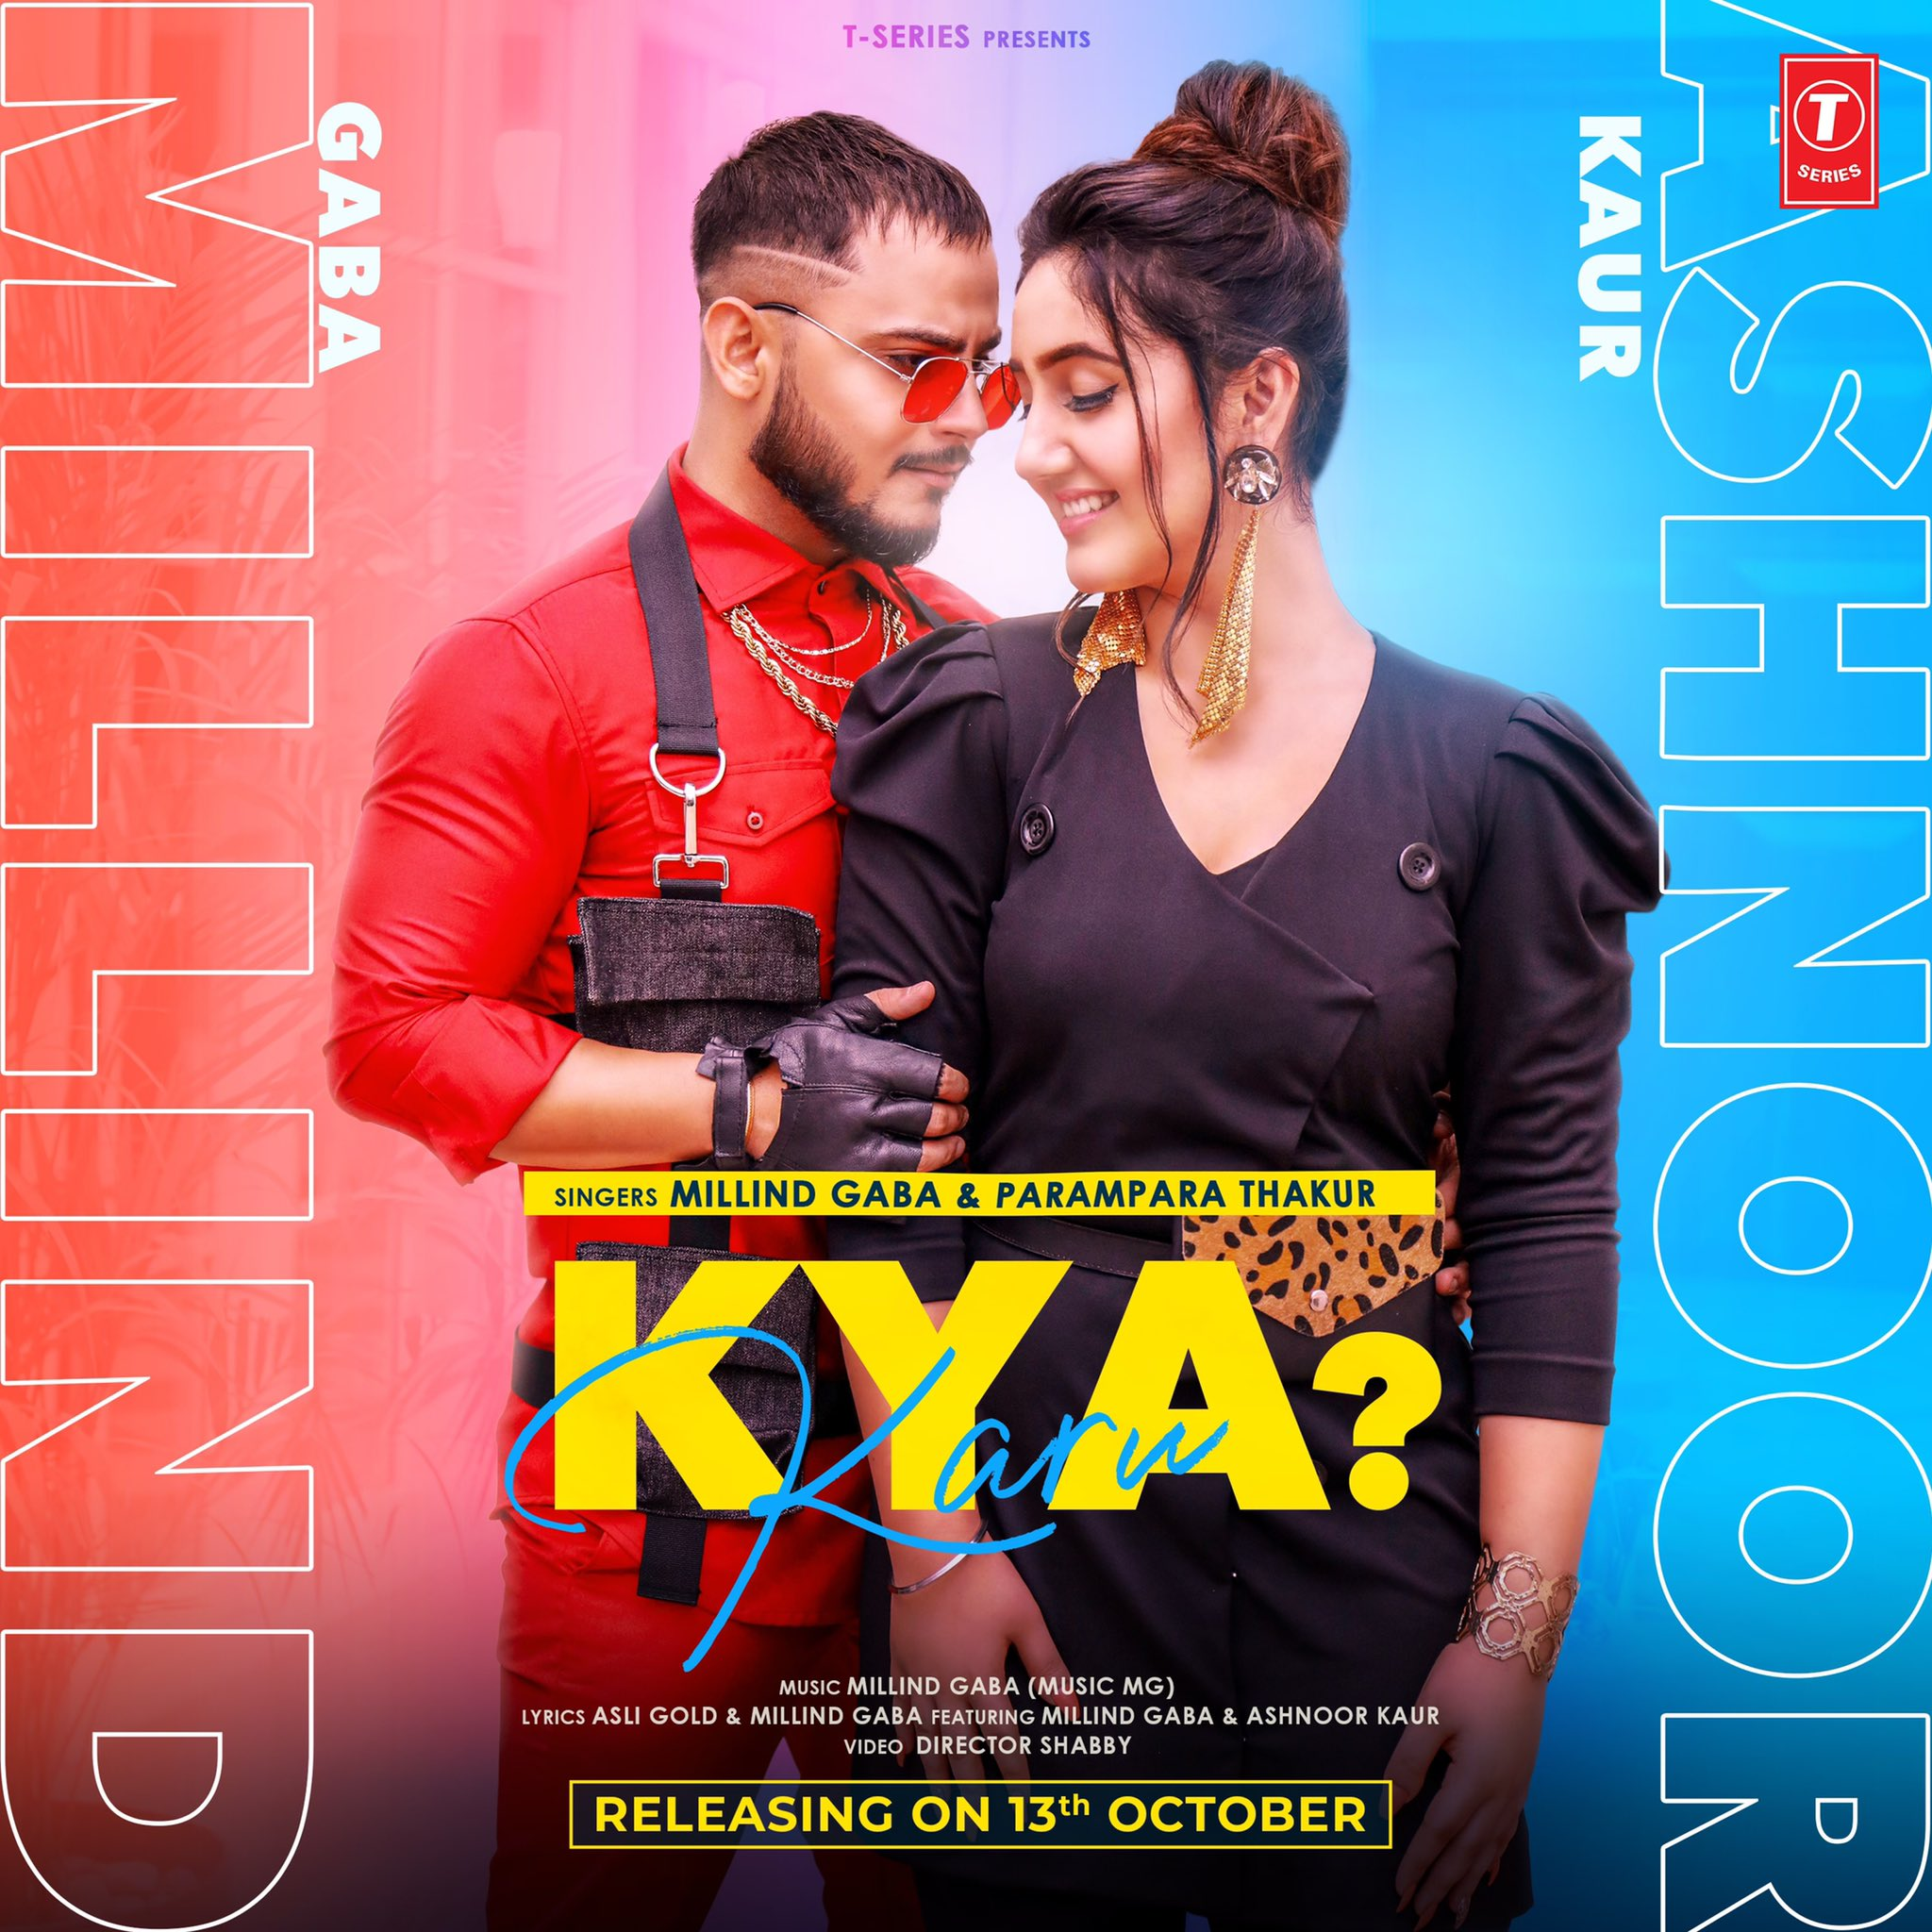 Kya Karu By Millind Gaba & Parmpara Official Music Video 1080p HDRip Download